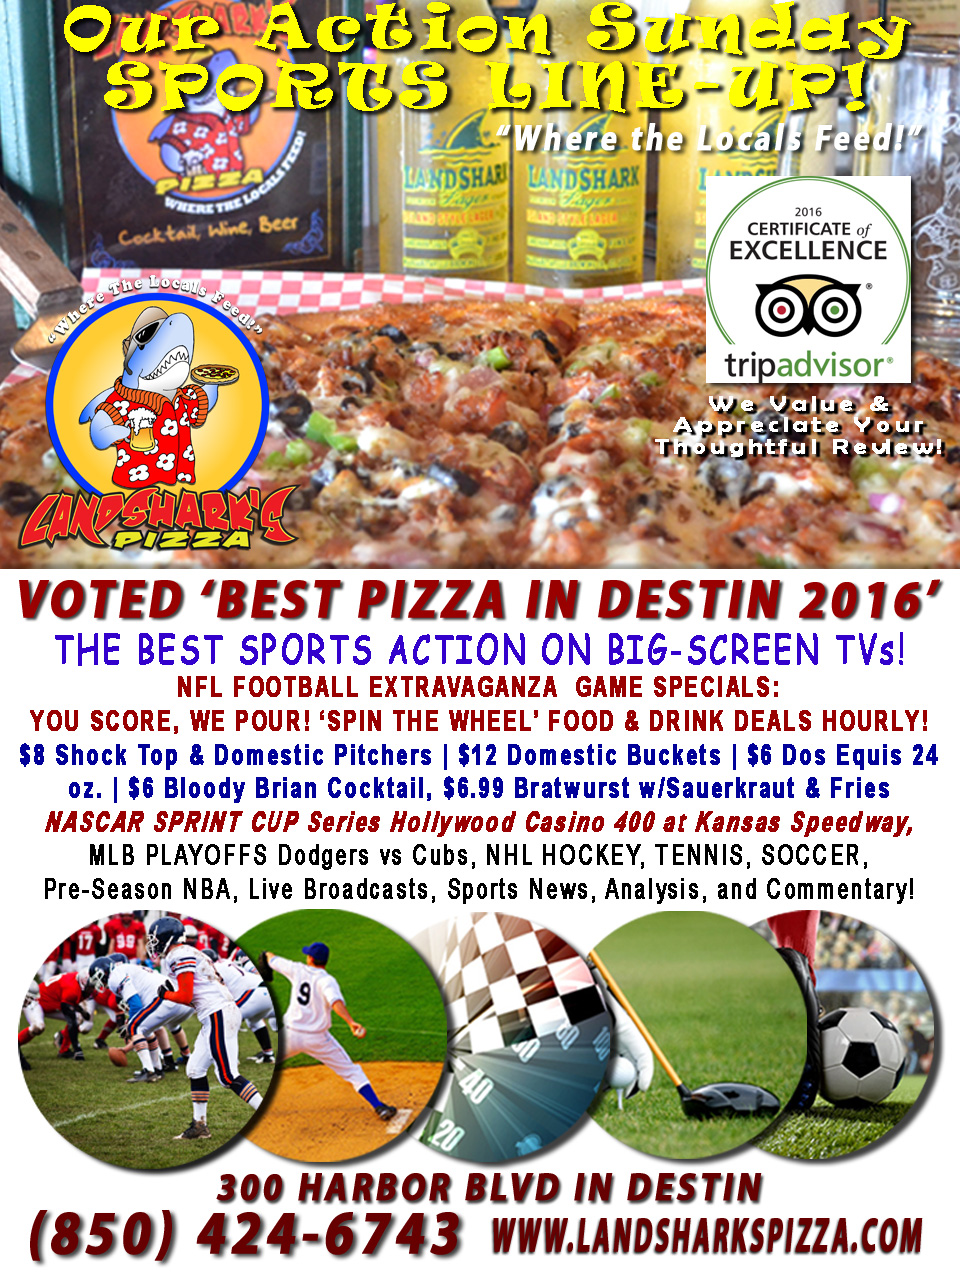 destin-fl-nfl-football-sports-bar-landsharks-pizza-food-cocktail-specials-10-16-16d